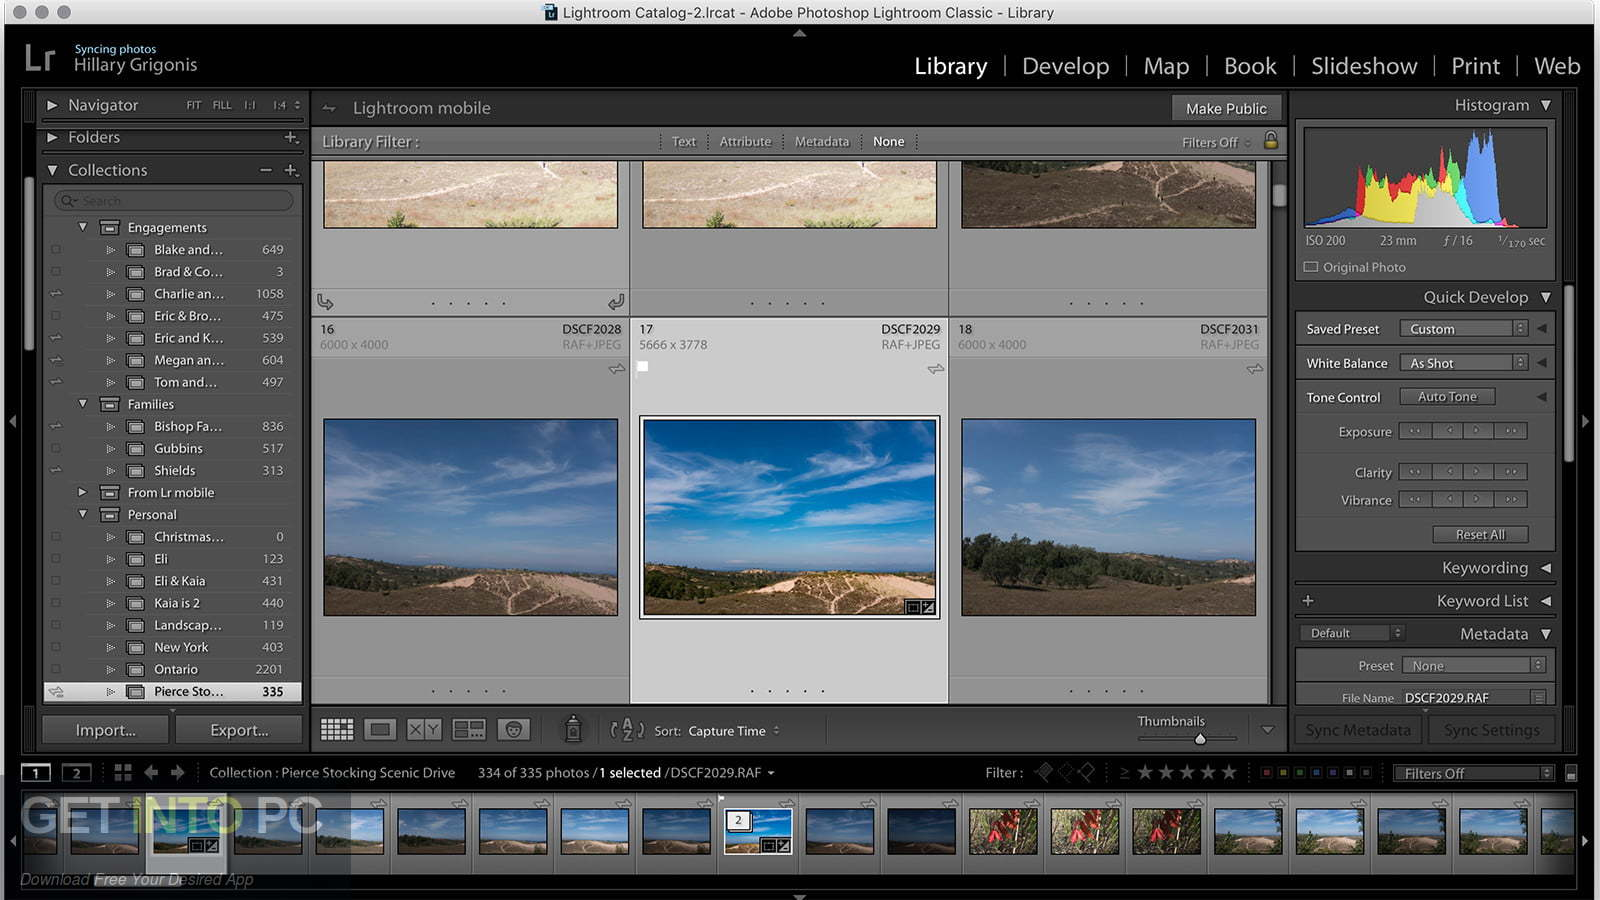 lightroom free download mac reddit